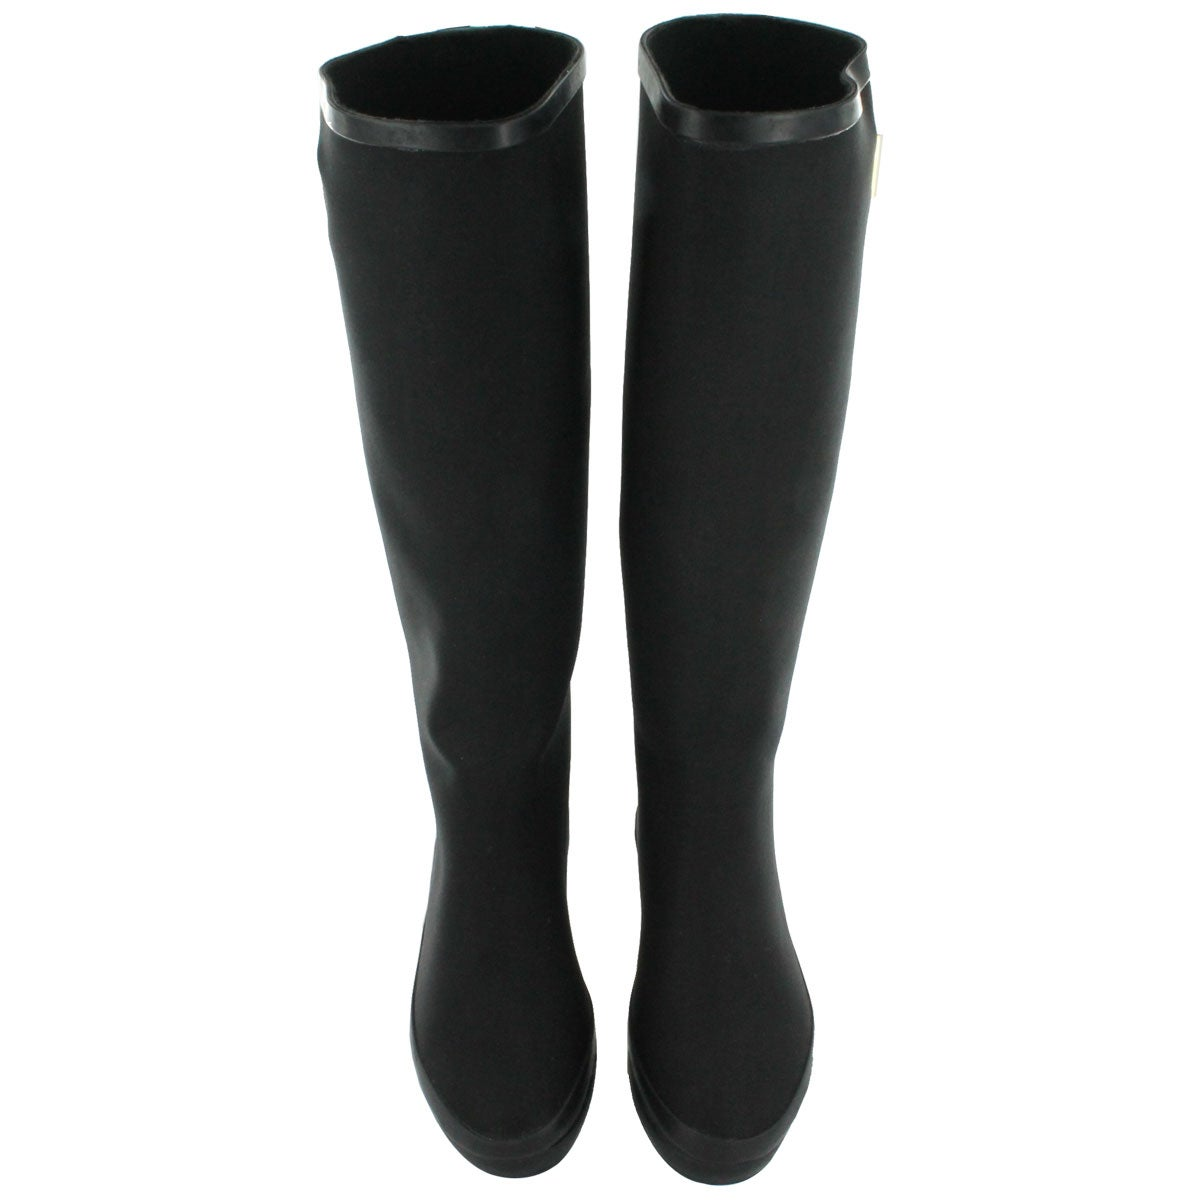 Boots for women black